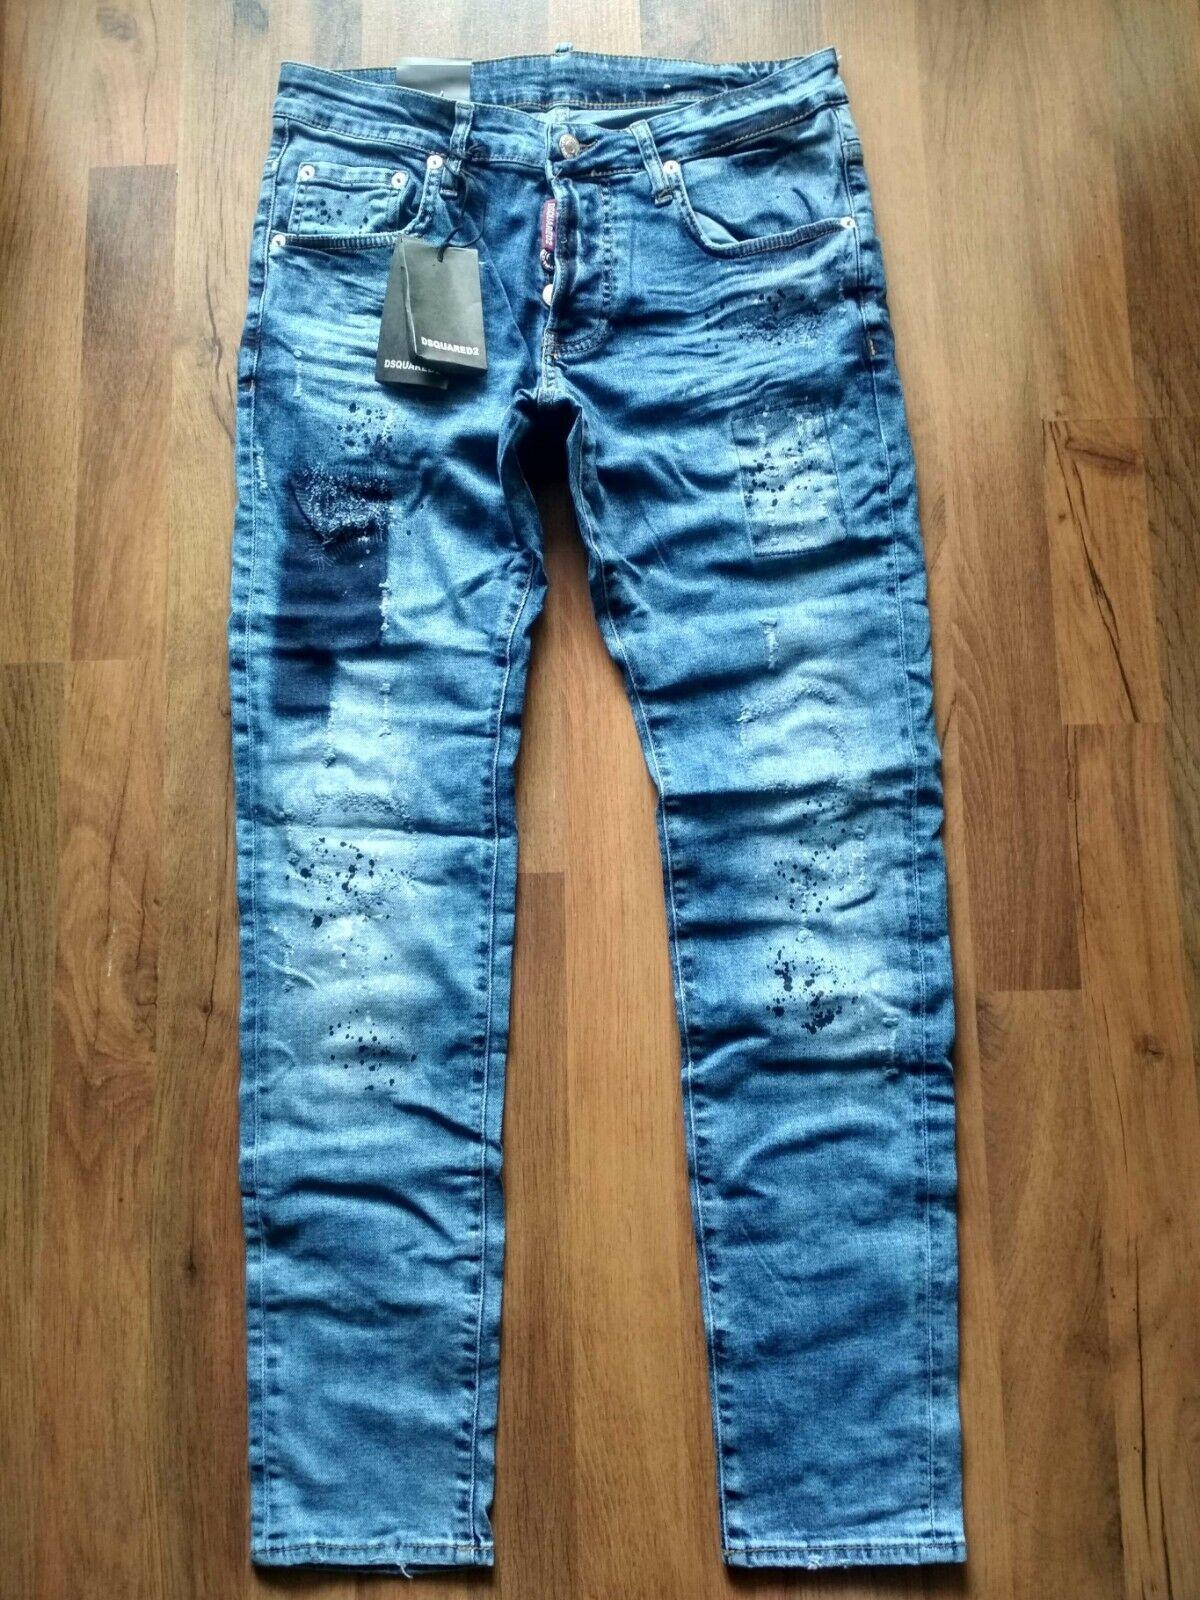 ee798735 BNWT MENS PAINTED JEANS, SIZE 33 48 EU DSQUARED2 nfywxe3675-Jeans